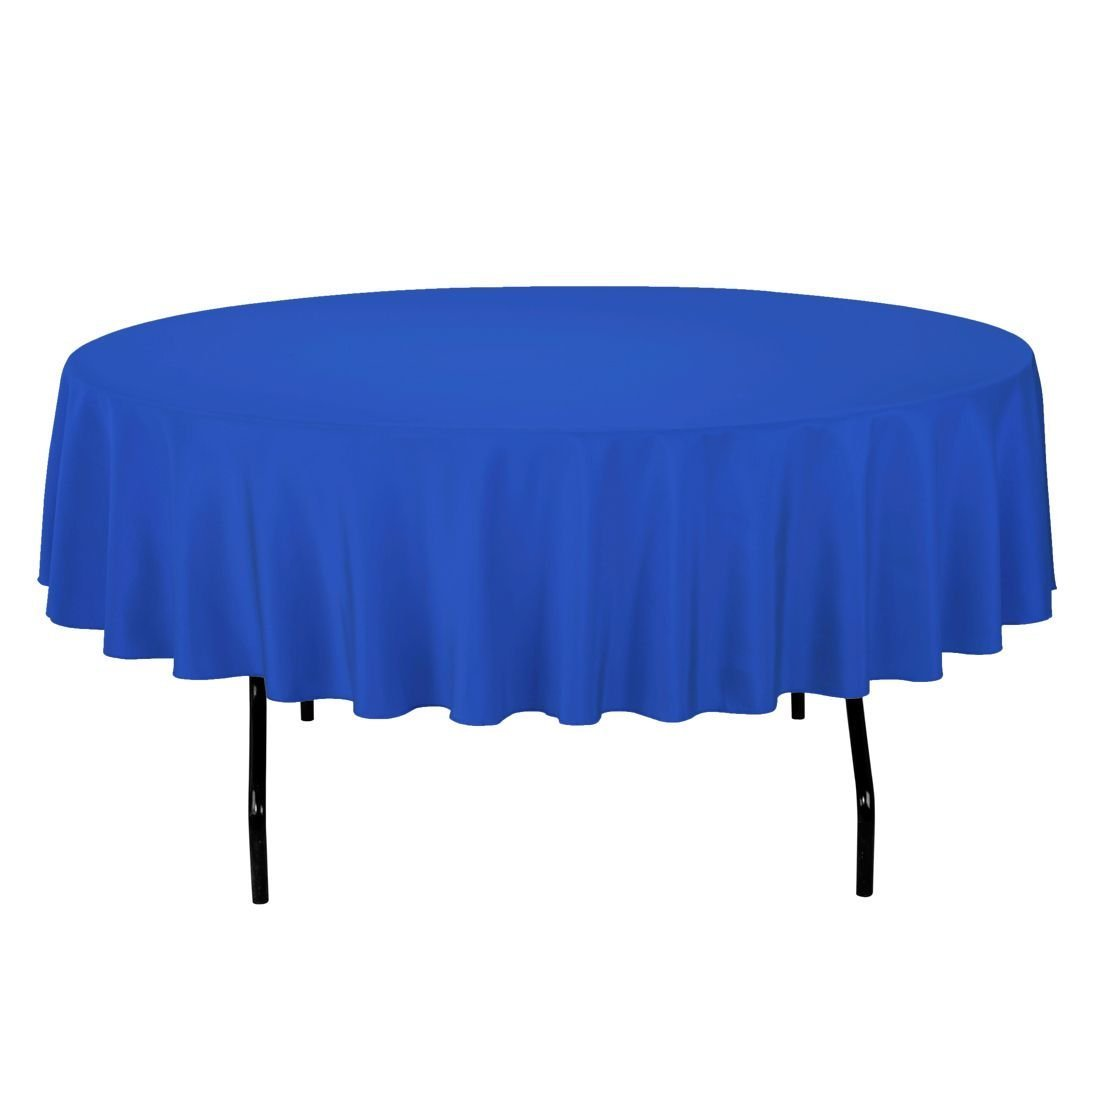 12 Pack 84'' ROUND Table Cover Premium Plastic Tablecloth for any Party or Event (Blue)